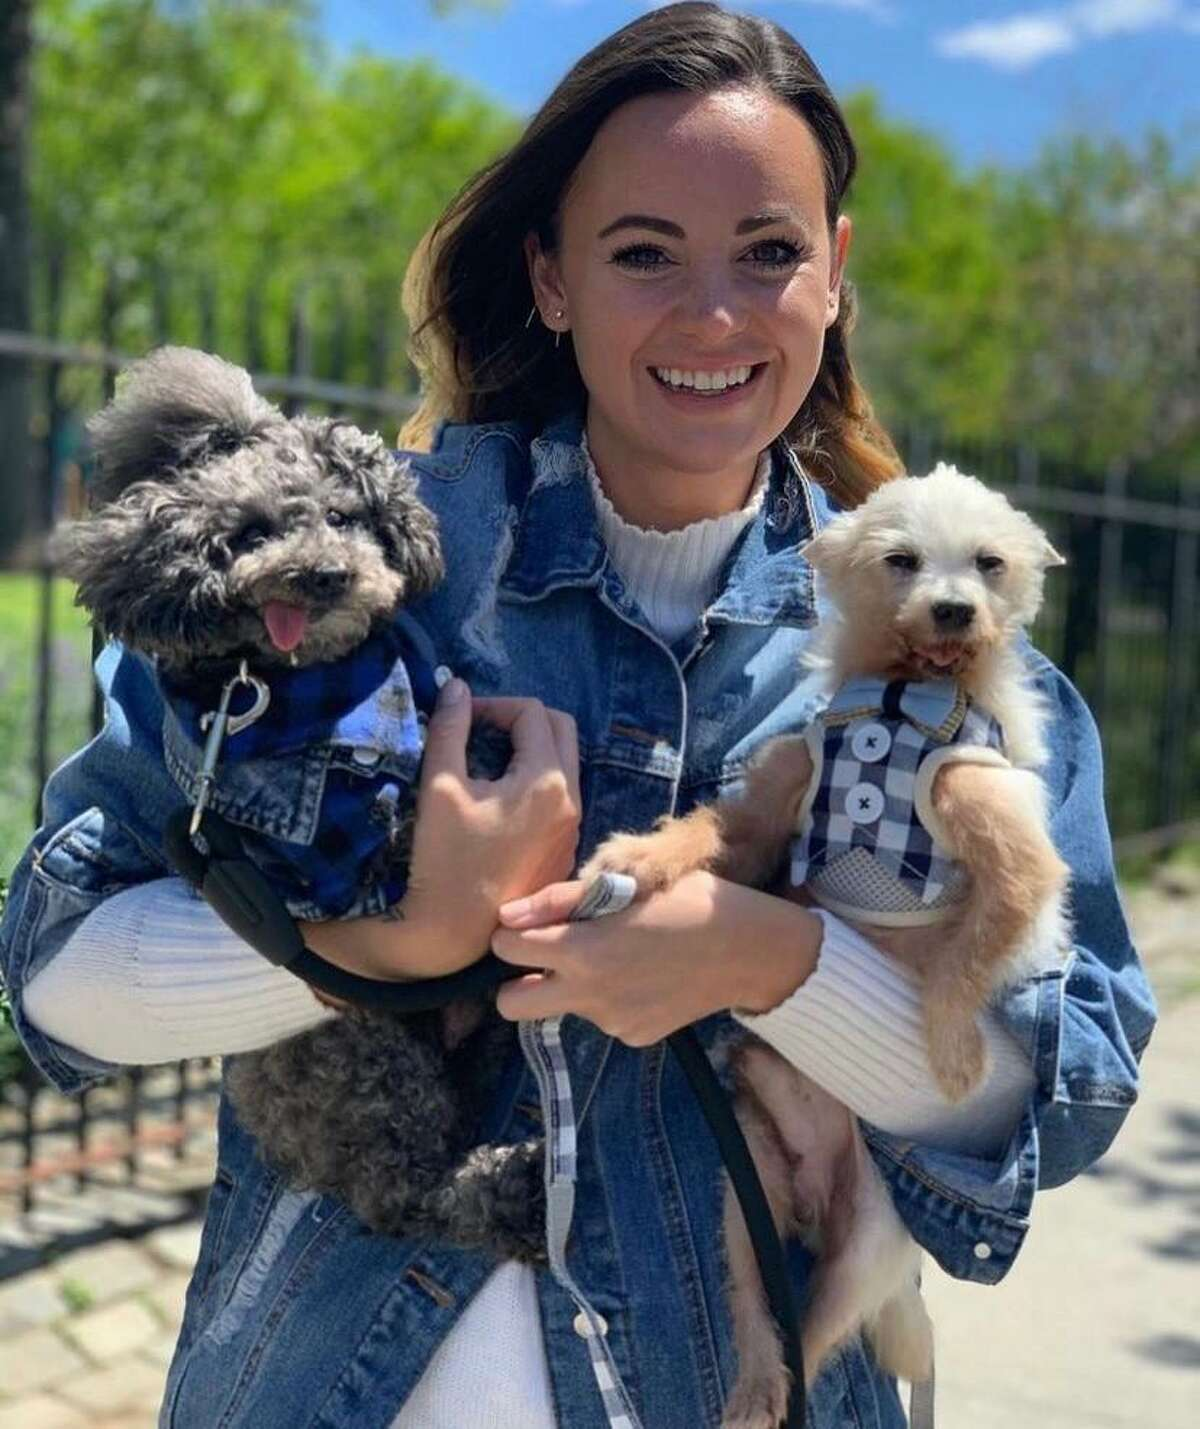 Torrington native Liz Harris with her senior dogs, Aldous, 17, a toy poodle, and Rooney, 15, a Maltese.